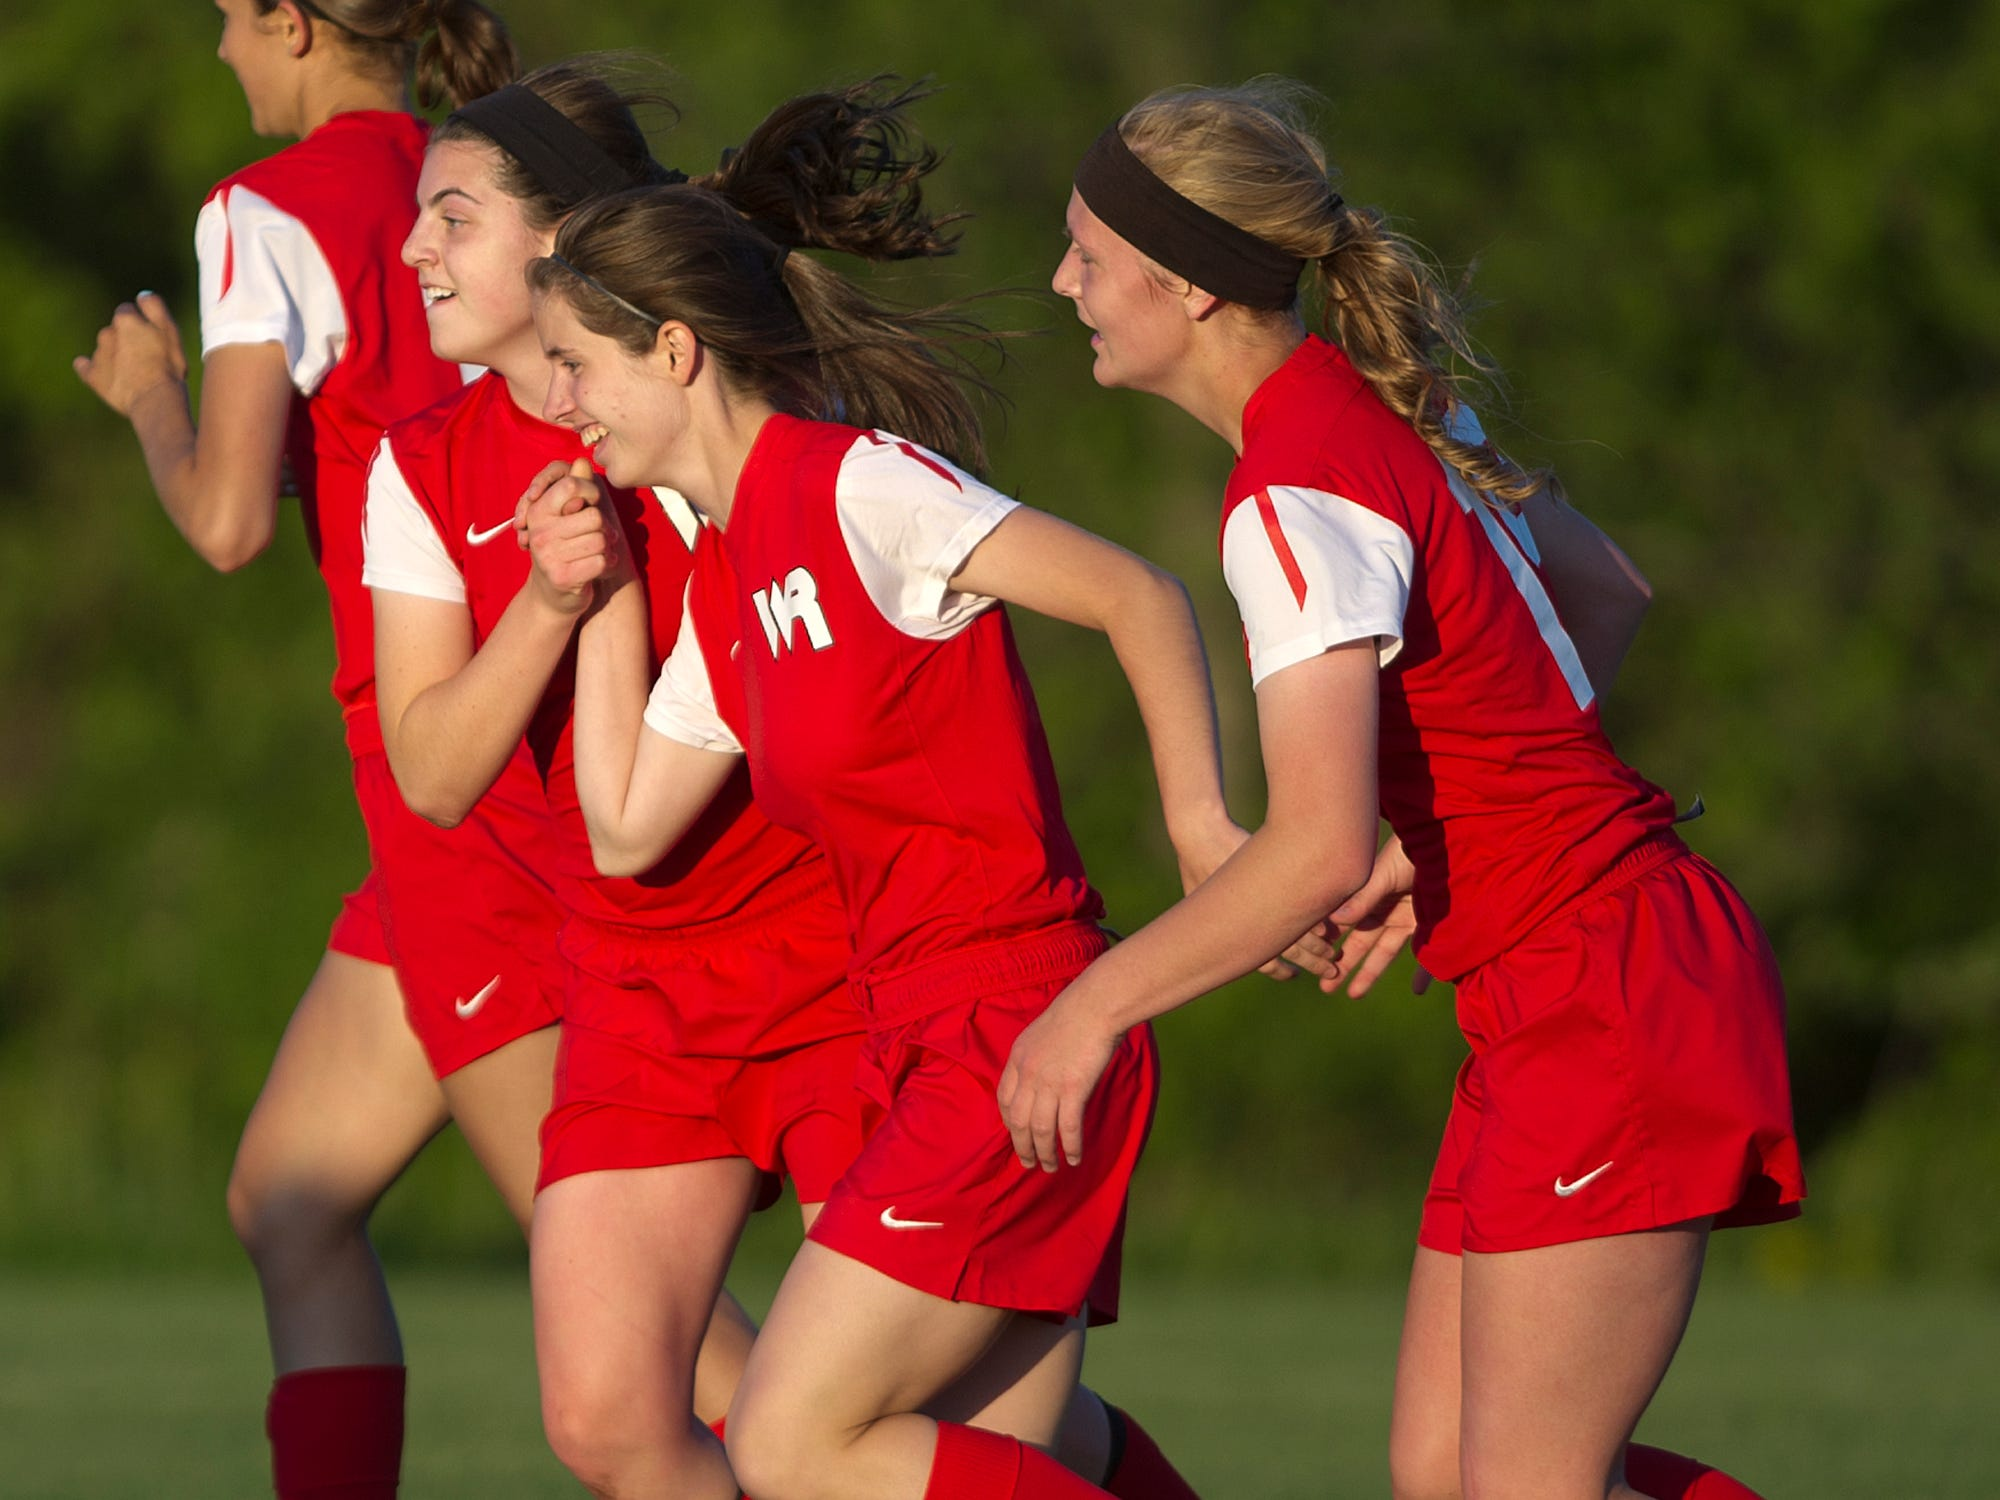 Wisconsin Rapids' Katy Schooley, center, celebrates her goal in the first half with her teammates Thursday during the Wisconsin Valley Conference soccer game against Stevens Point Area Senior High at the Portage County Youth Soccer Complex in Stevens Point.